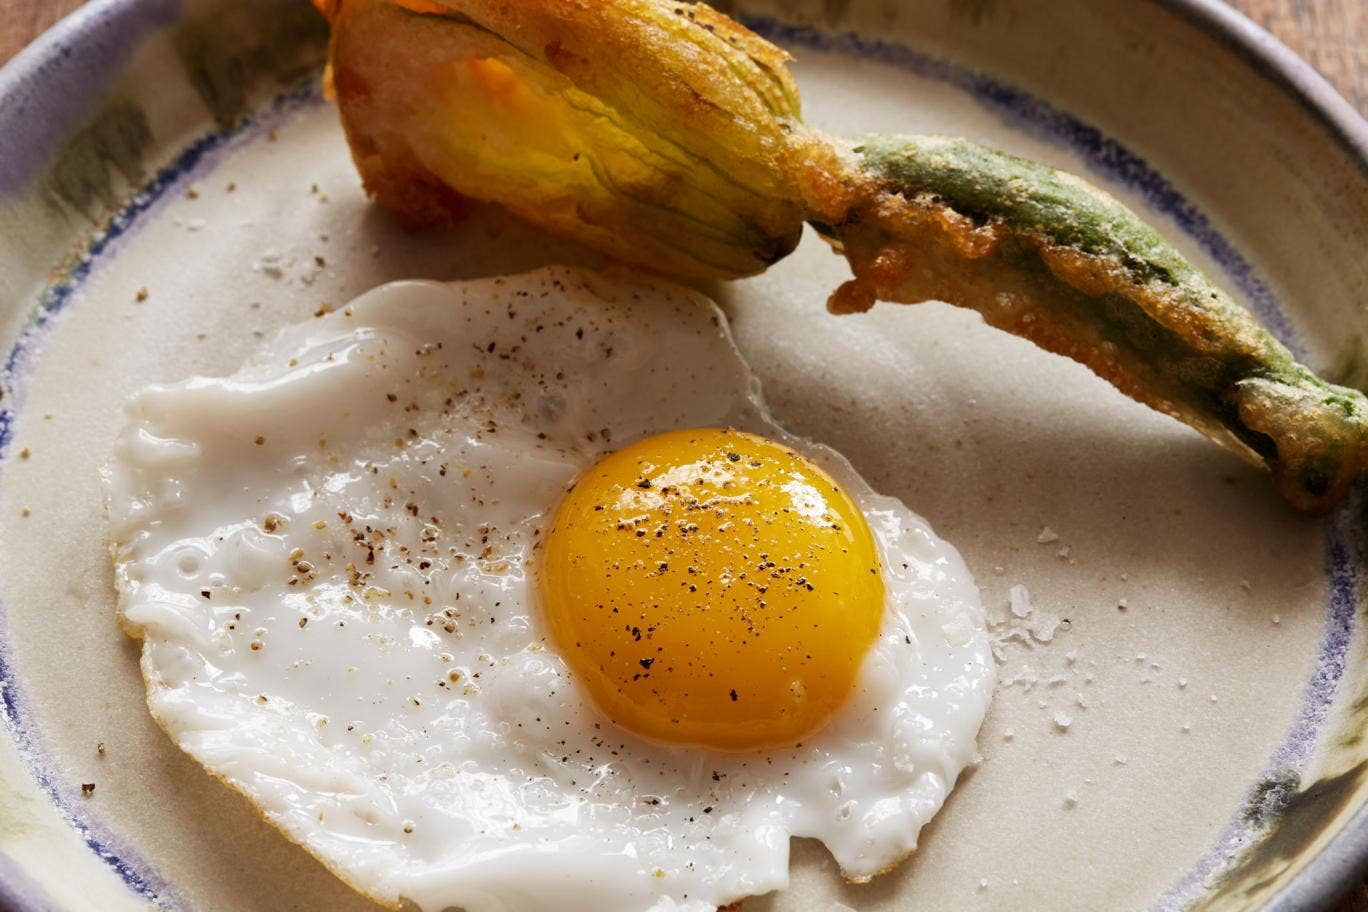 Fried duck's egg with courgette flowers